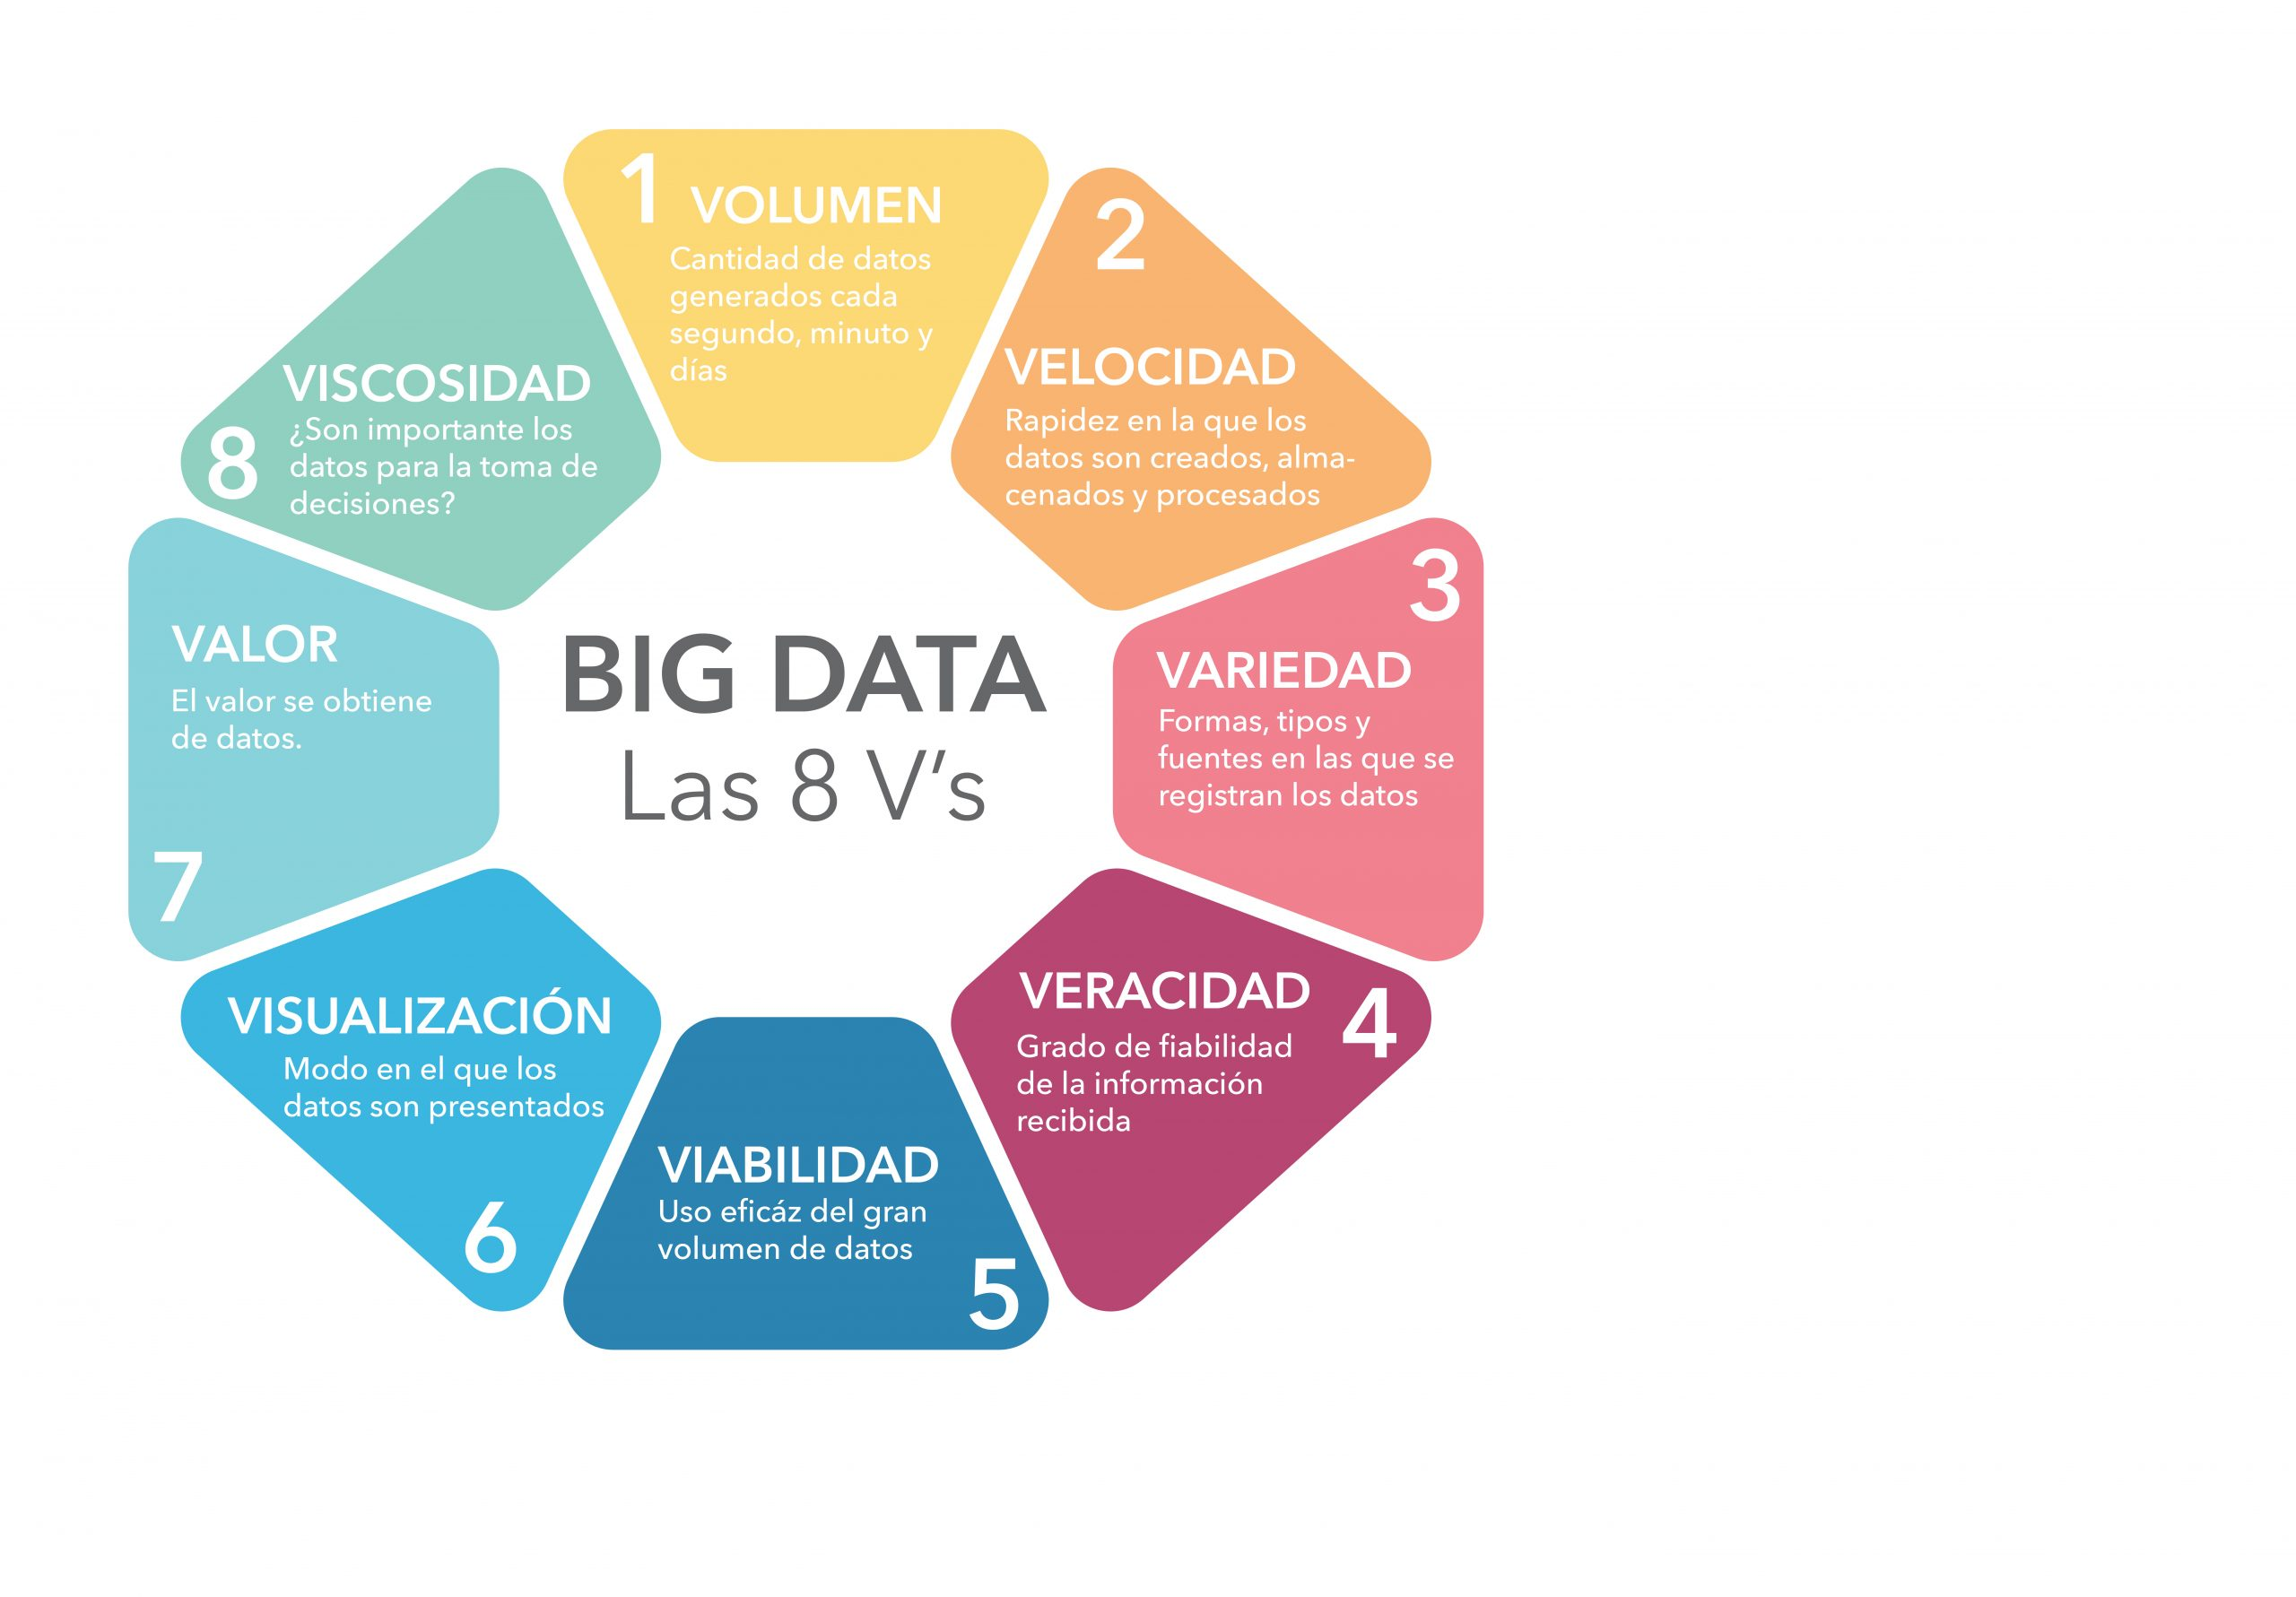 Las 8 vs del BIG DATA. Ciencia de datos